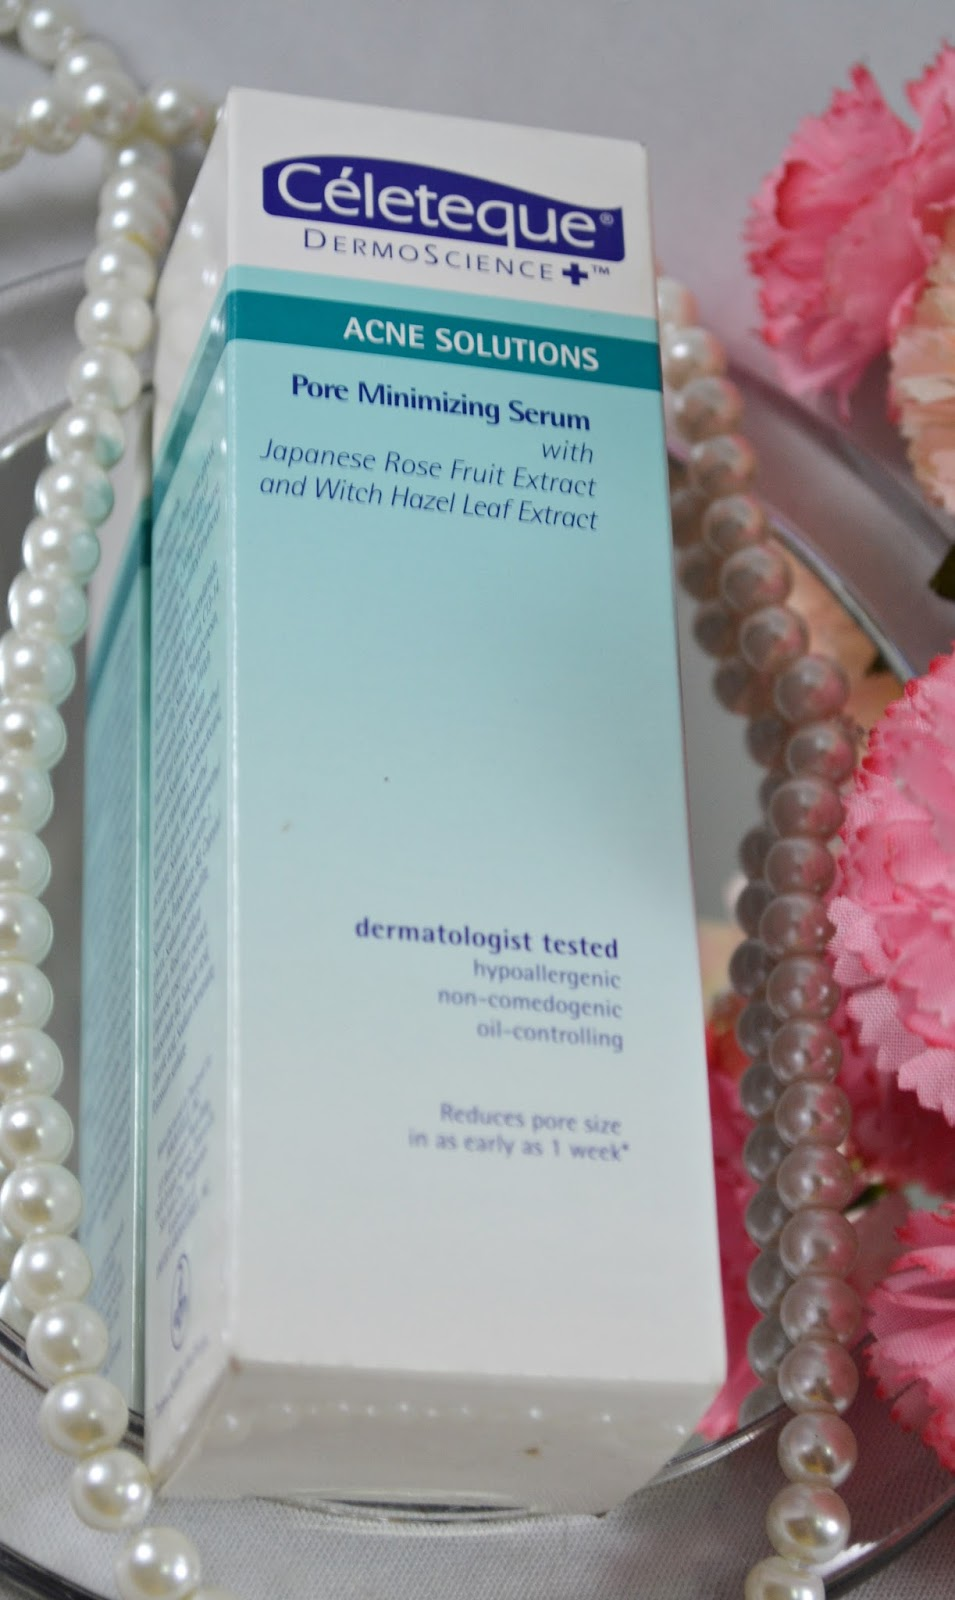 Celeteque Dermoscience Pore Minimizing Serum All About Beauty 101